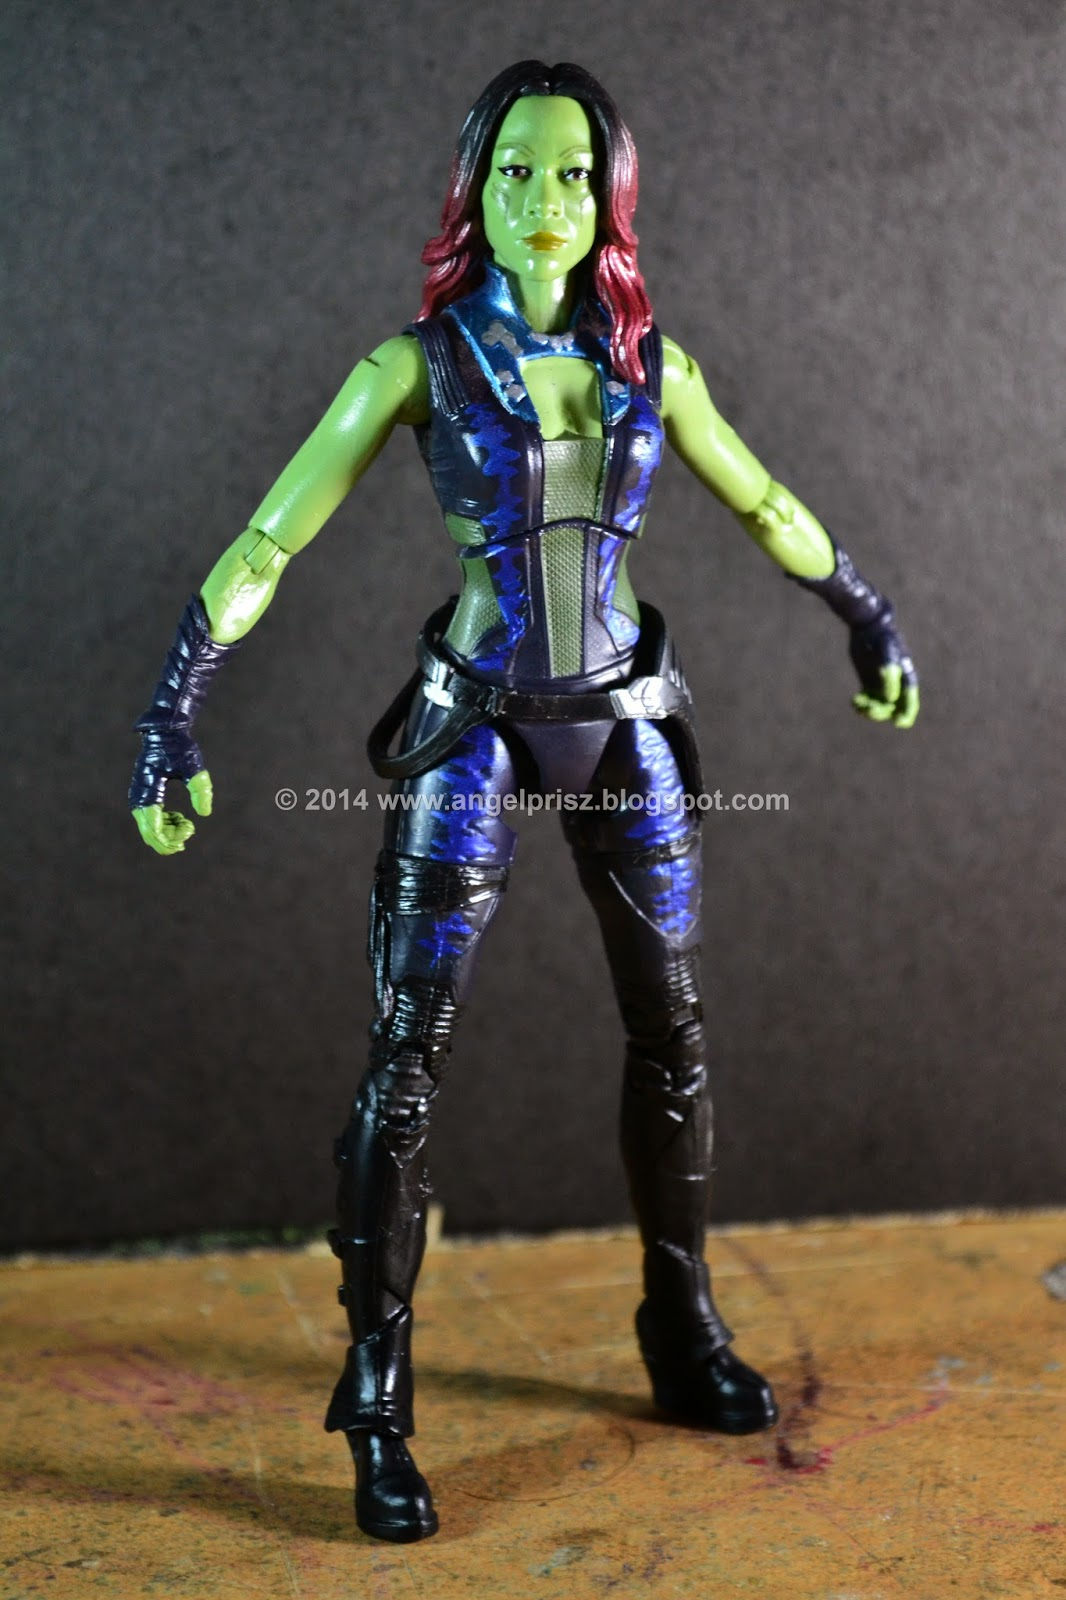 Why hasnt Gamora succumbed to Star-Lords charms in the